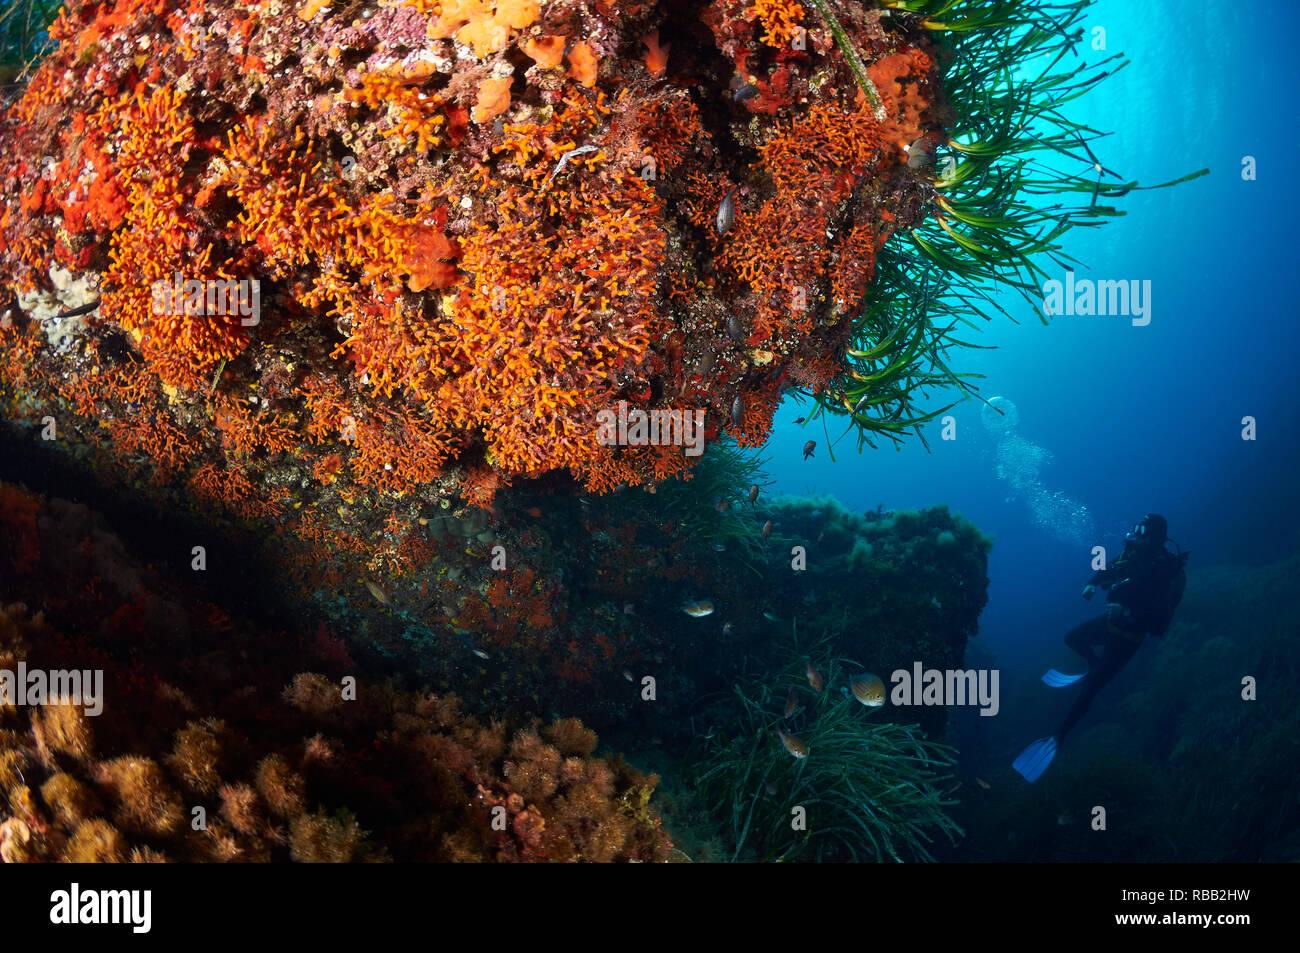 Scuba diver looking an underwater cave full of false red coral (Myriapora truncata) in Ses Salines Natural Park (Formentera, Balearic Islands, Spain) Stock Photo